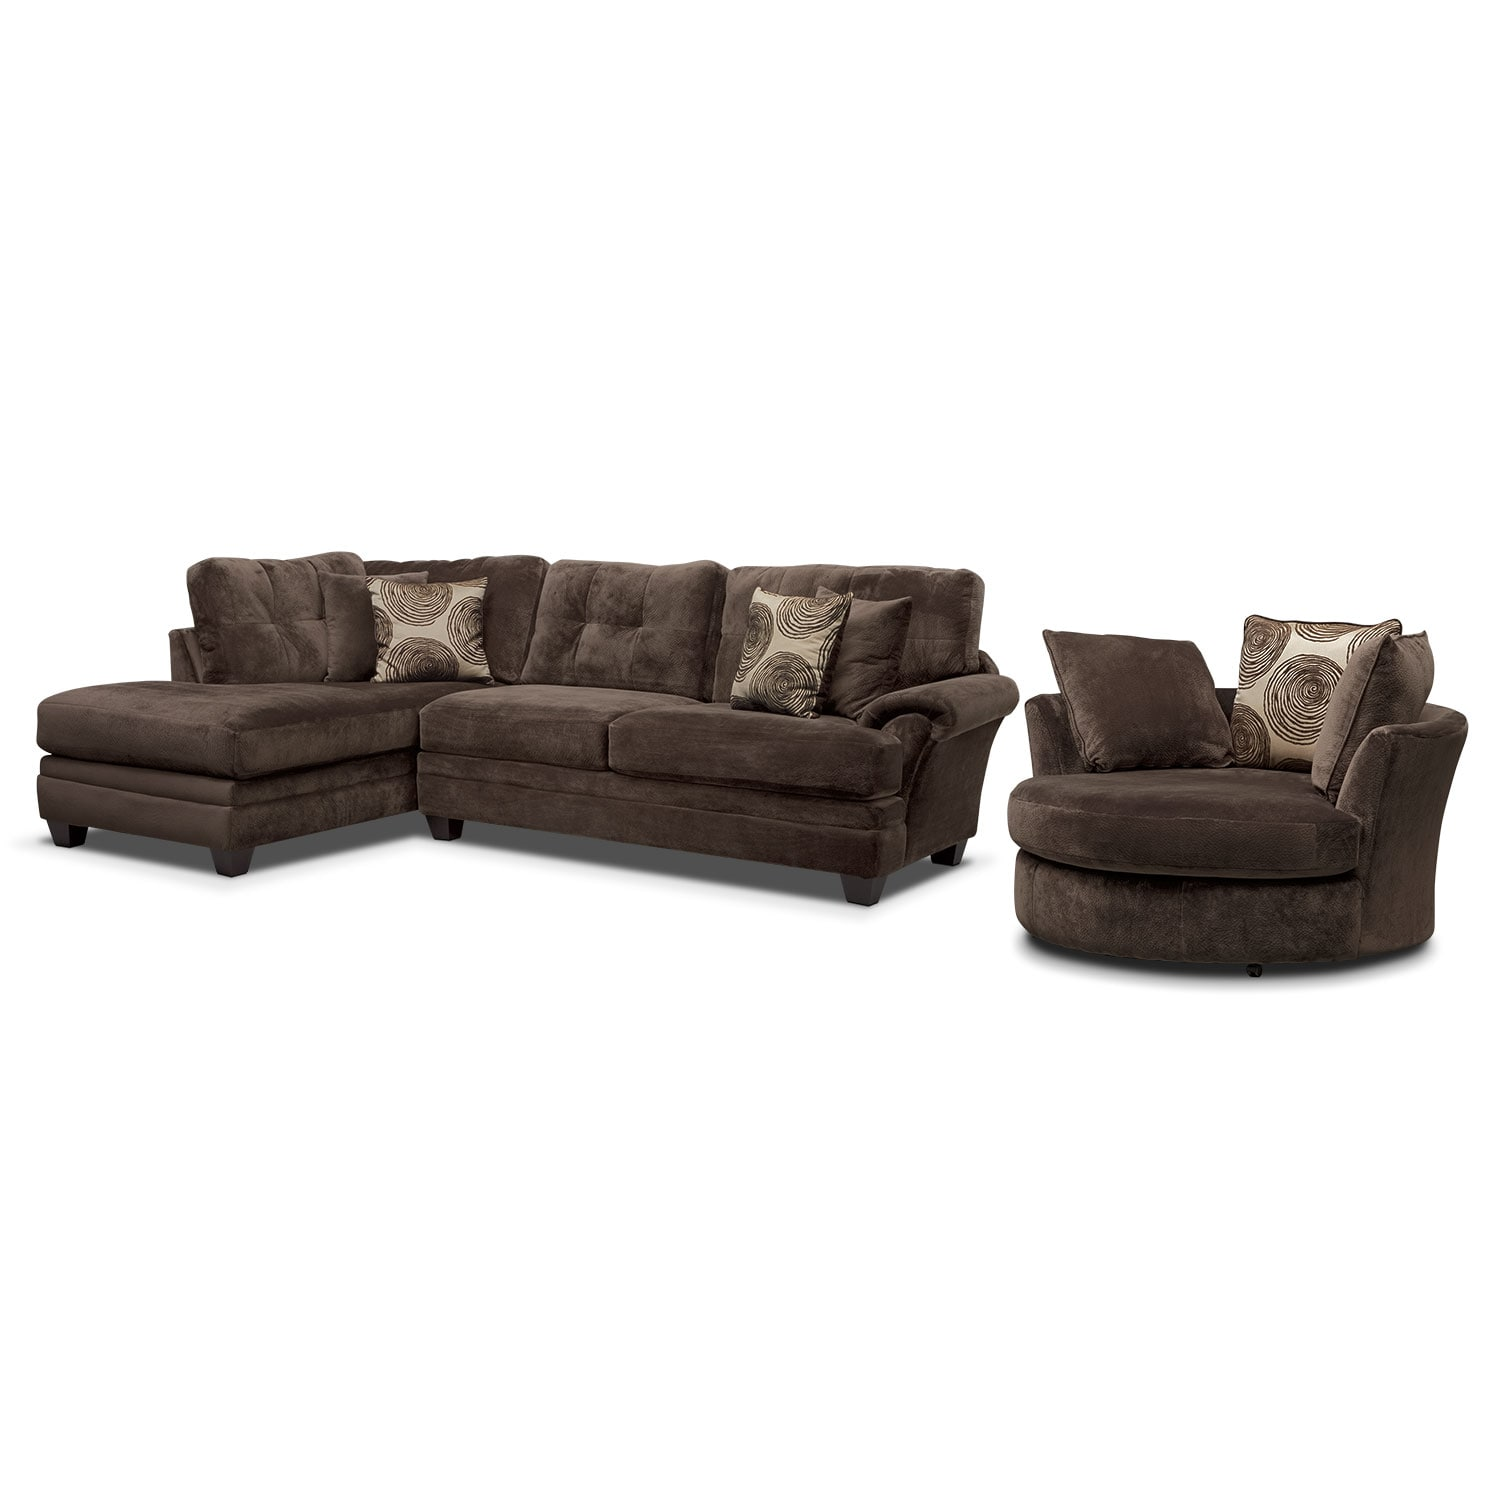 Cordelle 2 Piece Left Facing Chaise Sectional And Swivel